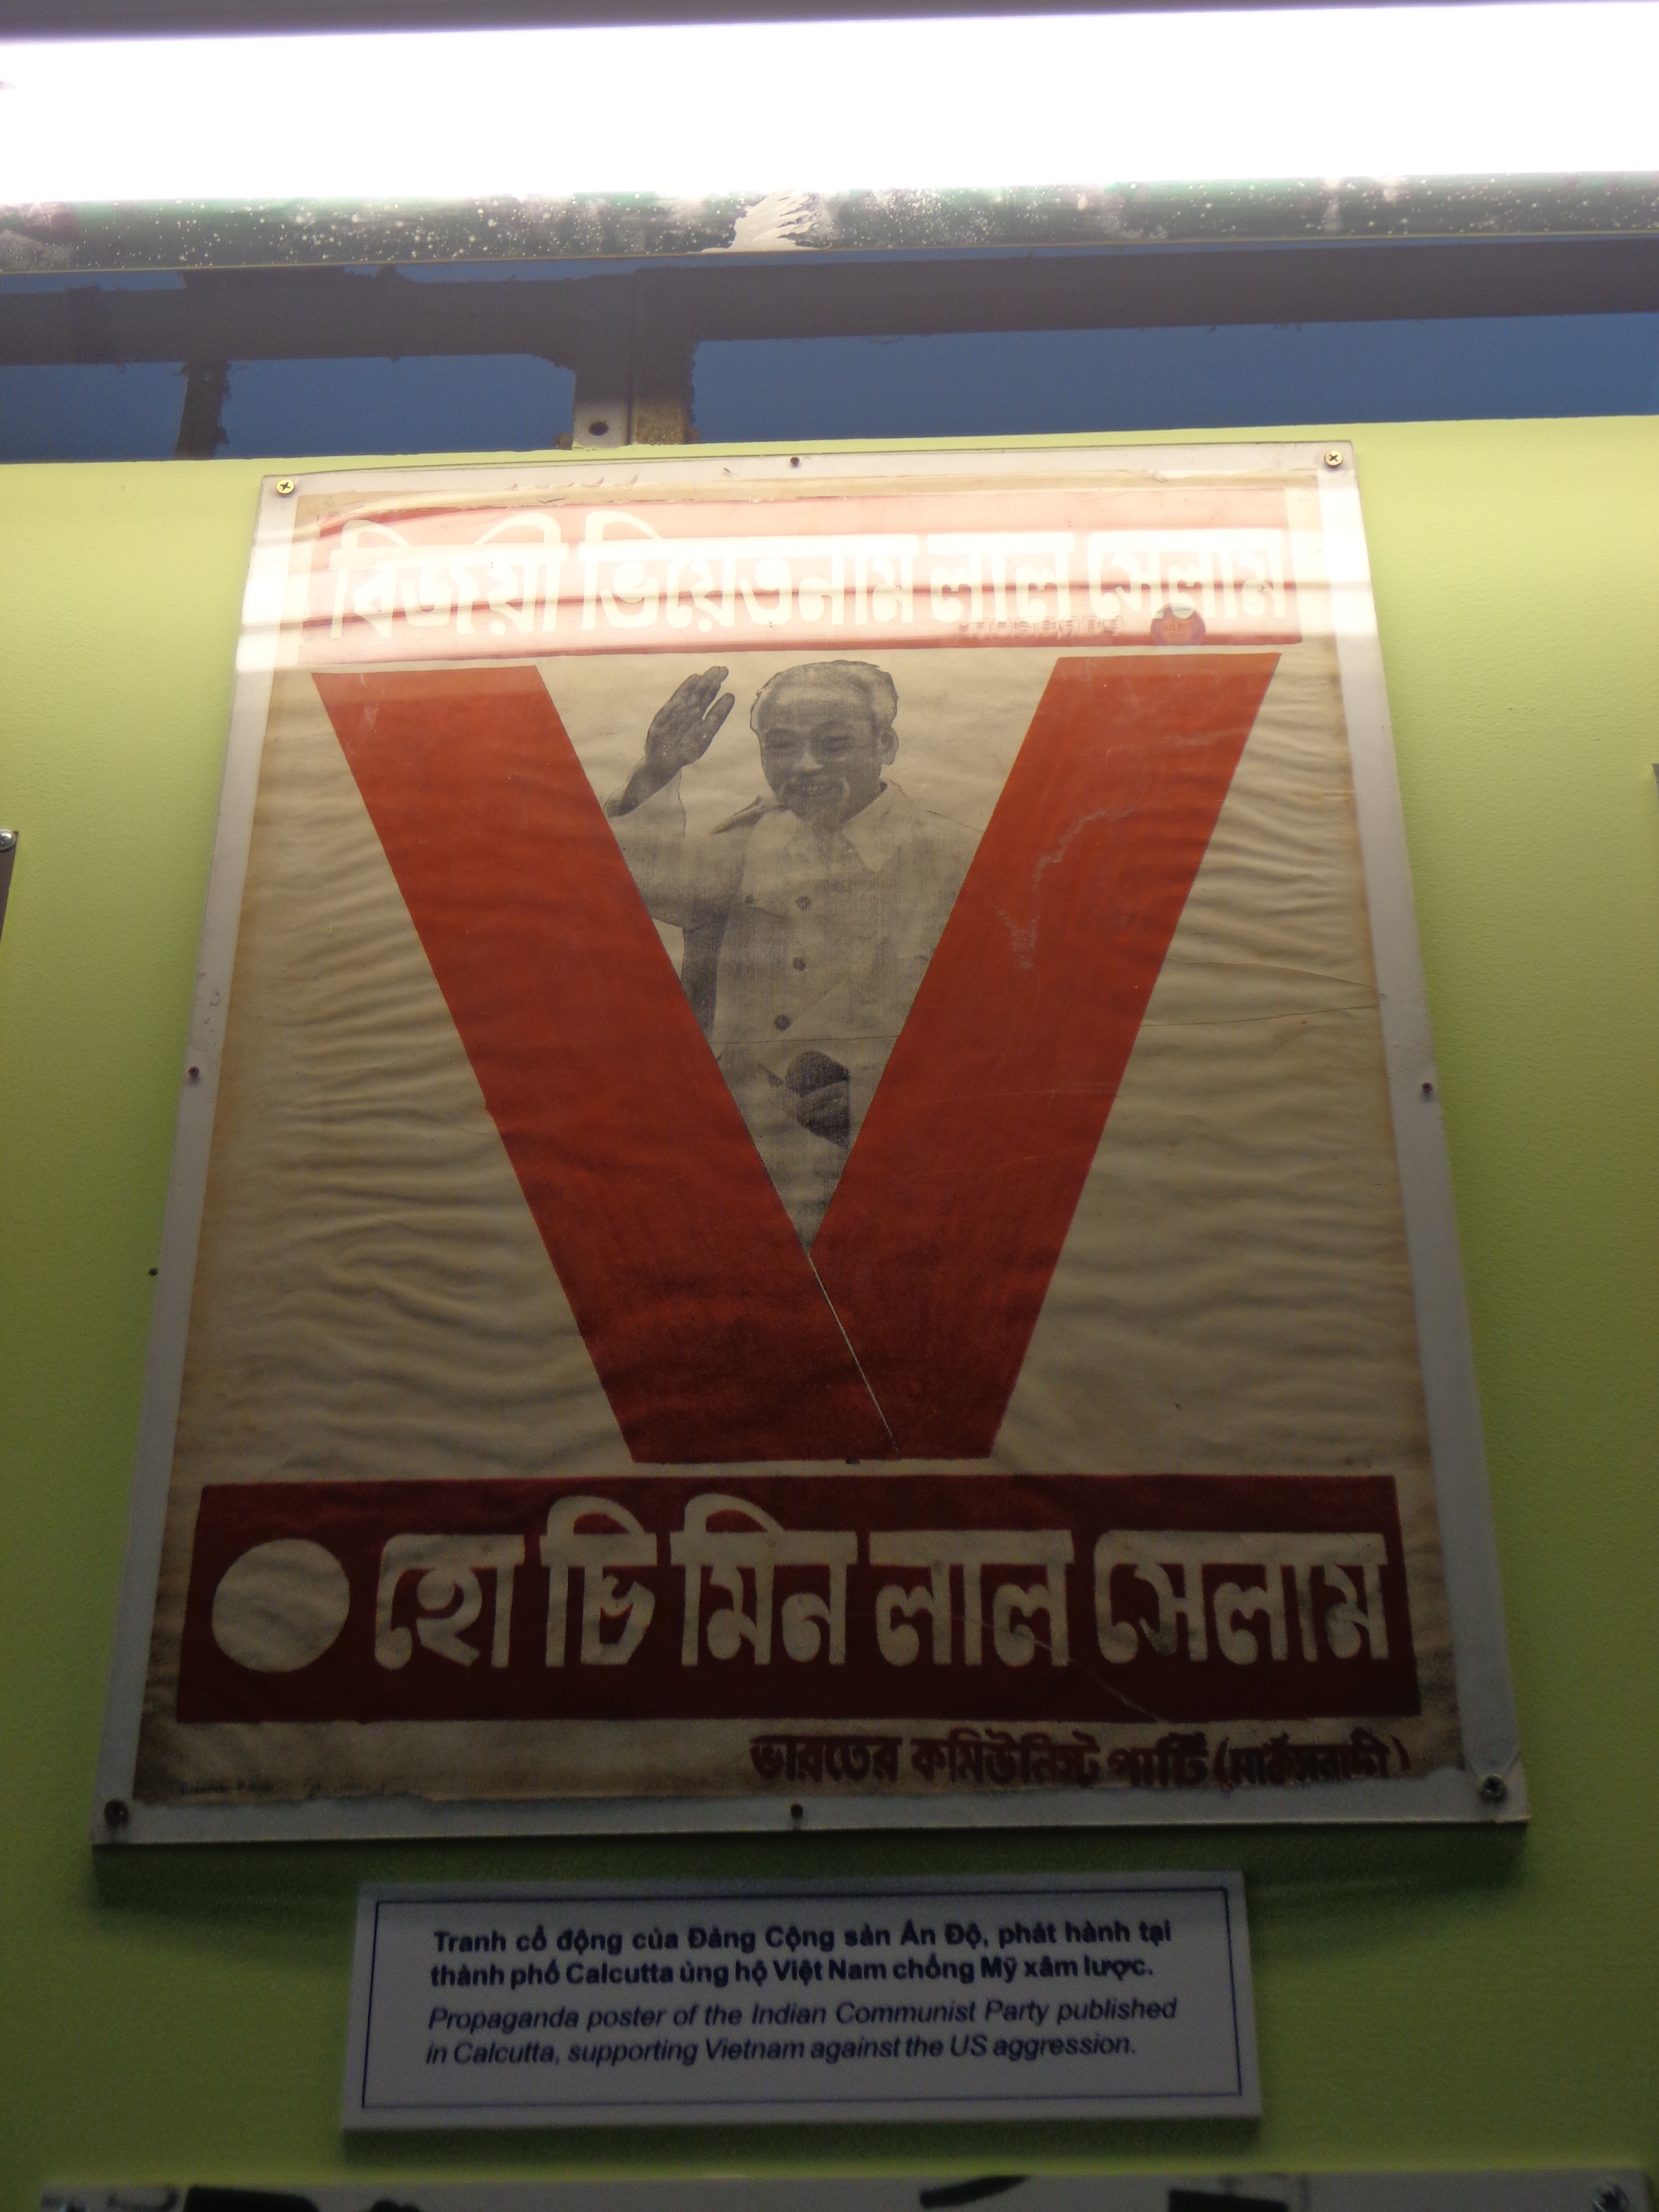 Here is a poster in my native language (Bengali). Back then, Communist Party of India (Marxist) had just come to power in the state of West Bengal.